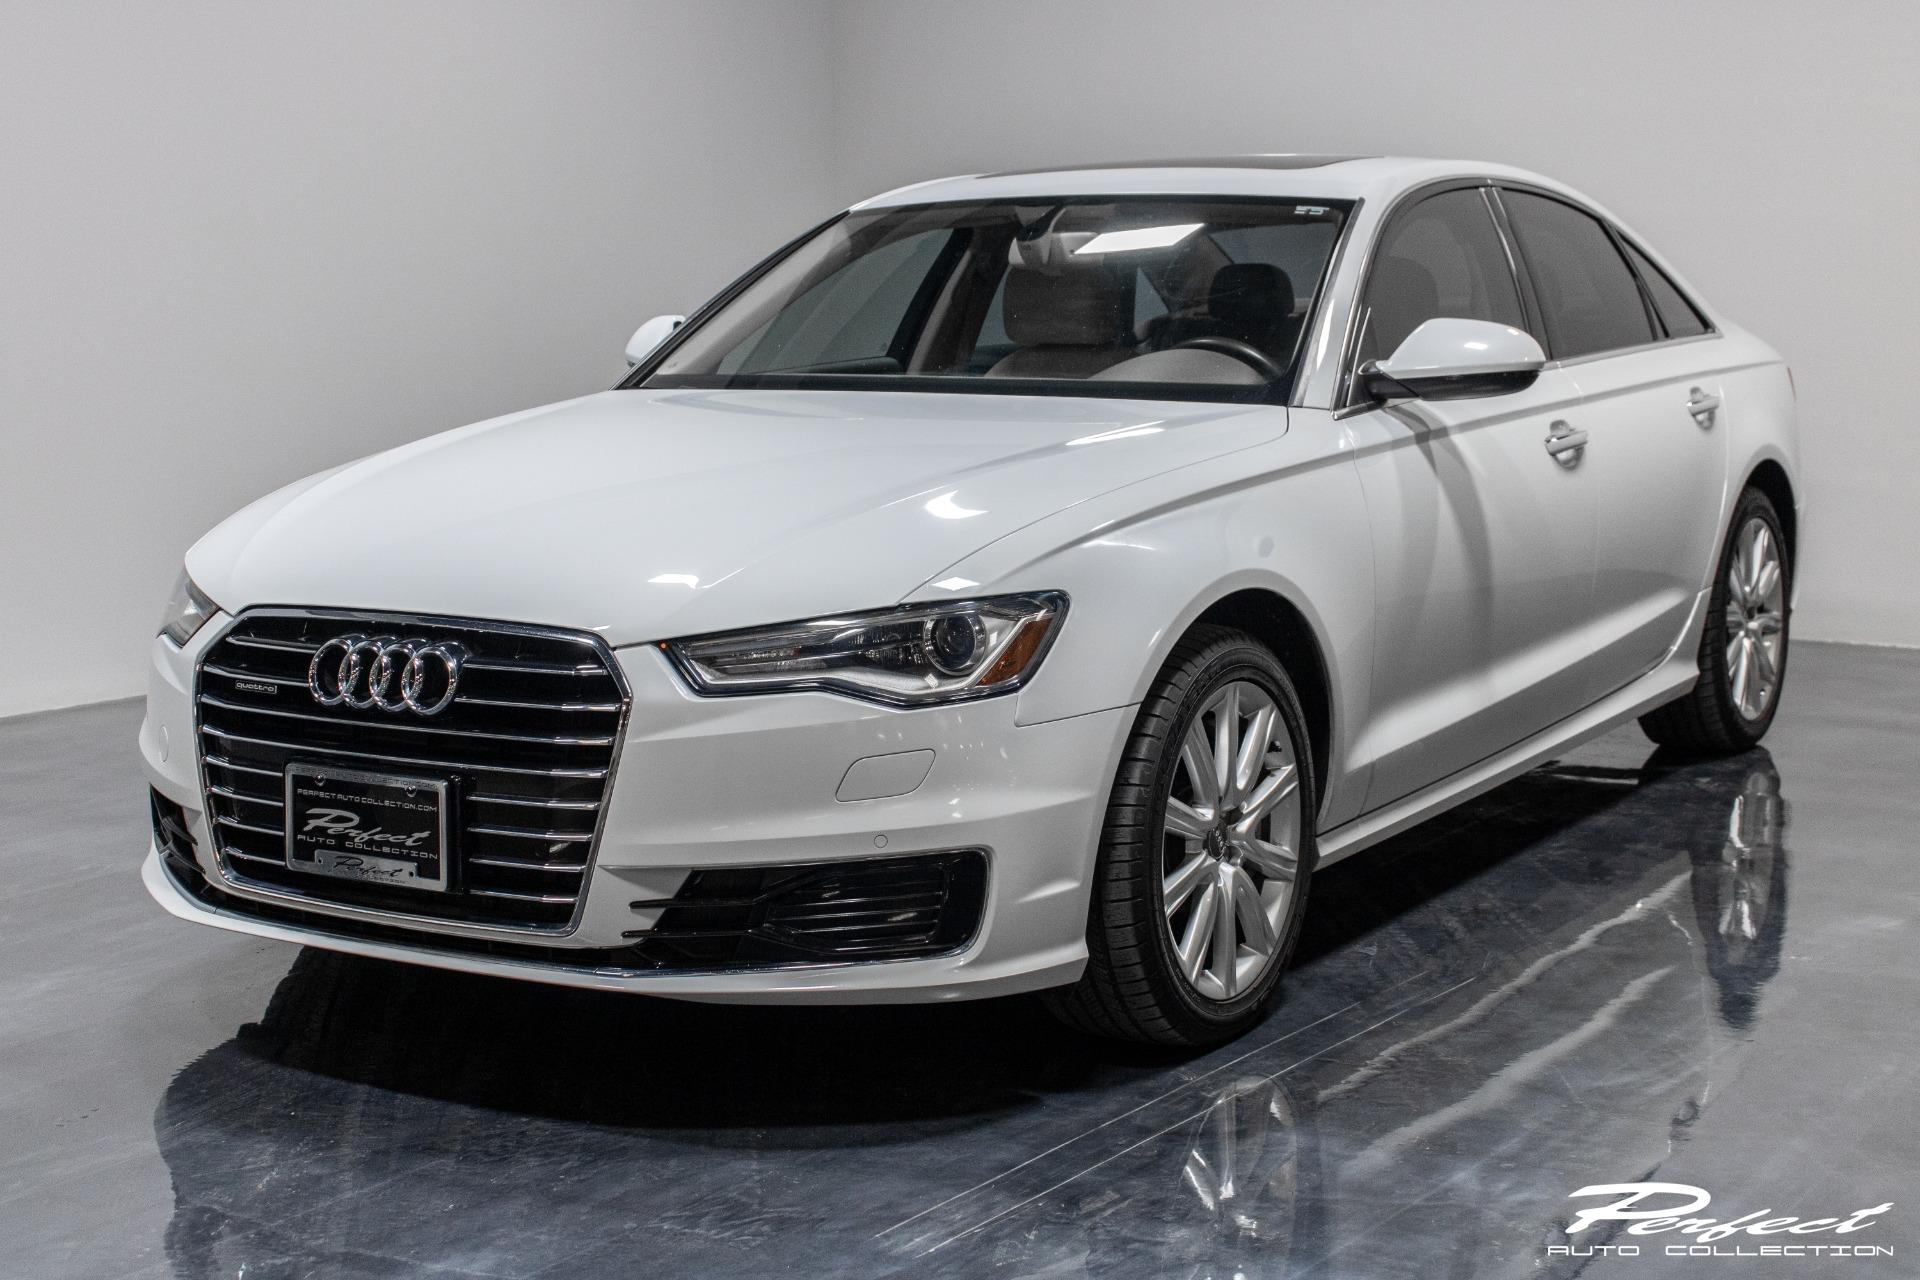 Used 2016 Audi A6 2.0T Premium Plus Sedan 4D for sale Sold at Perfect Auto Collection in Akron OH 44310 1